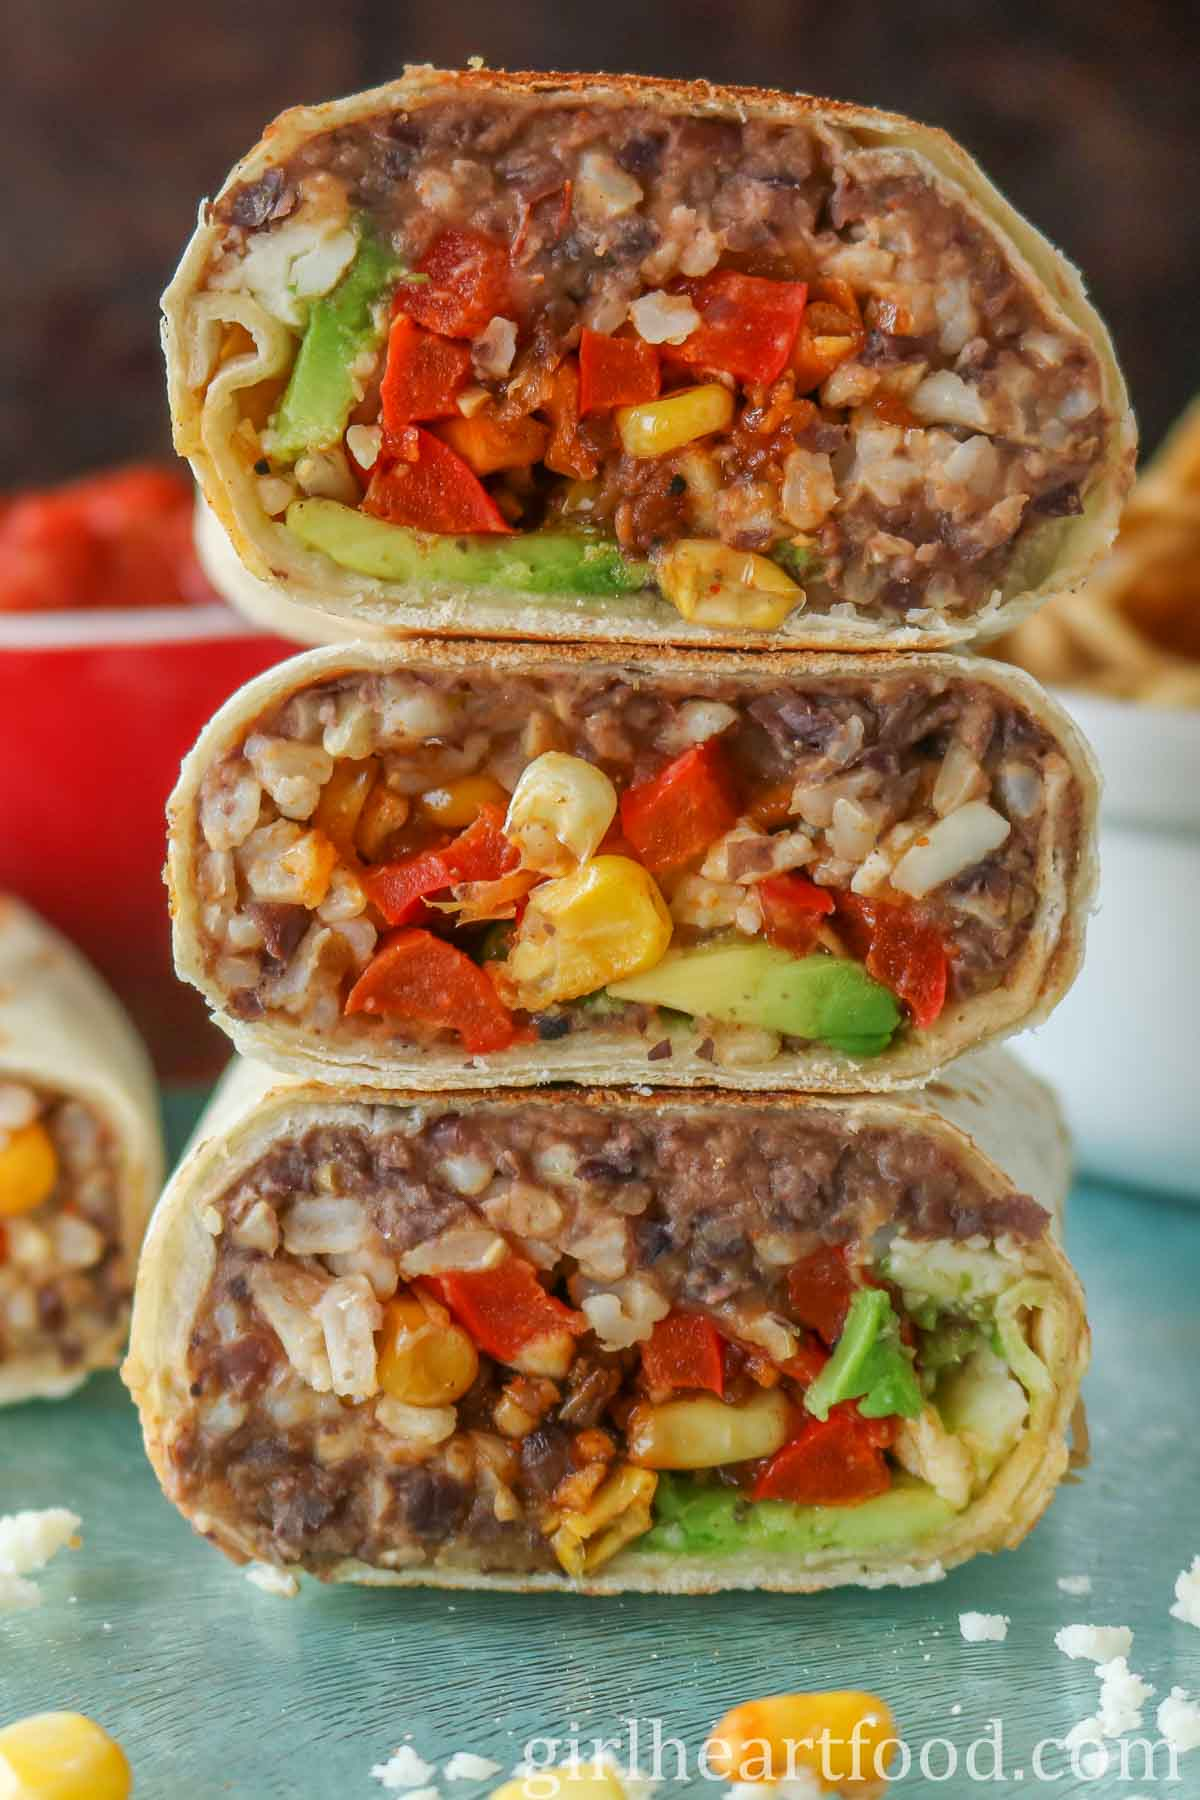 Three pieces of a refried bean burrito stacked on top of each other.